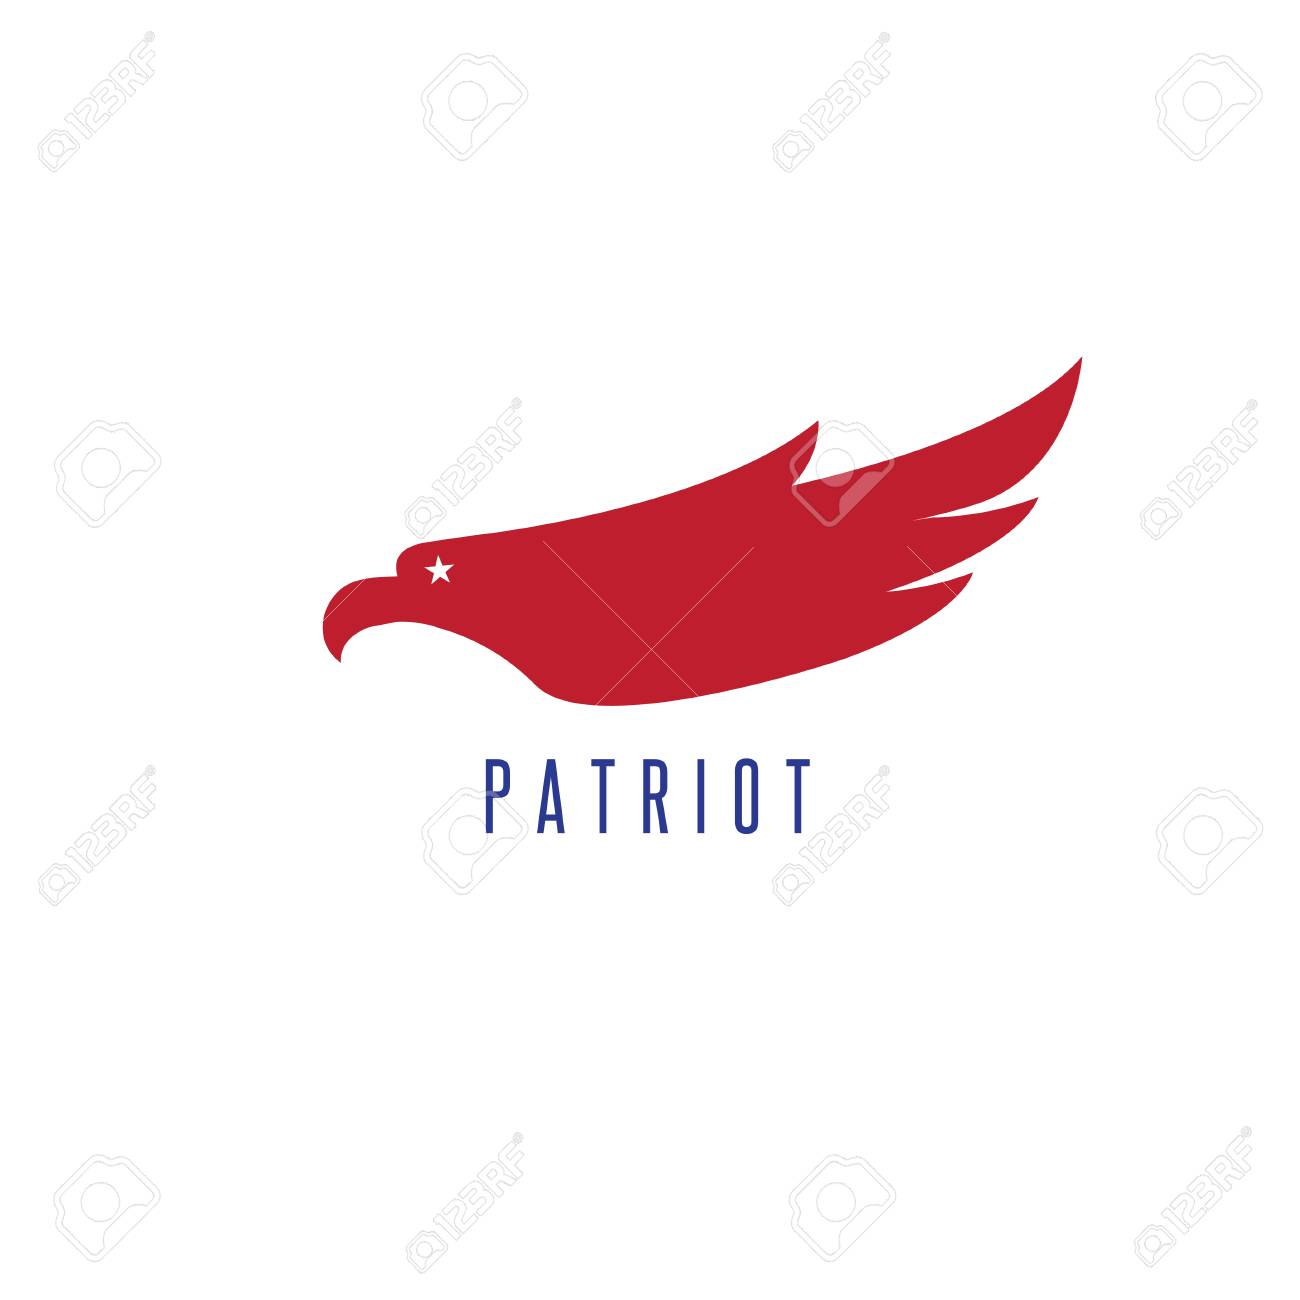 Design Template Of Abstract Patriotic Eagle Stock Vector